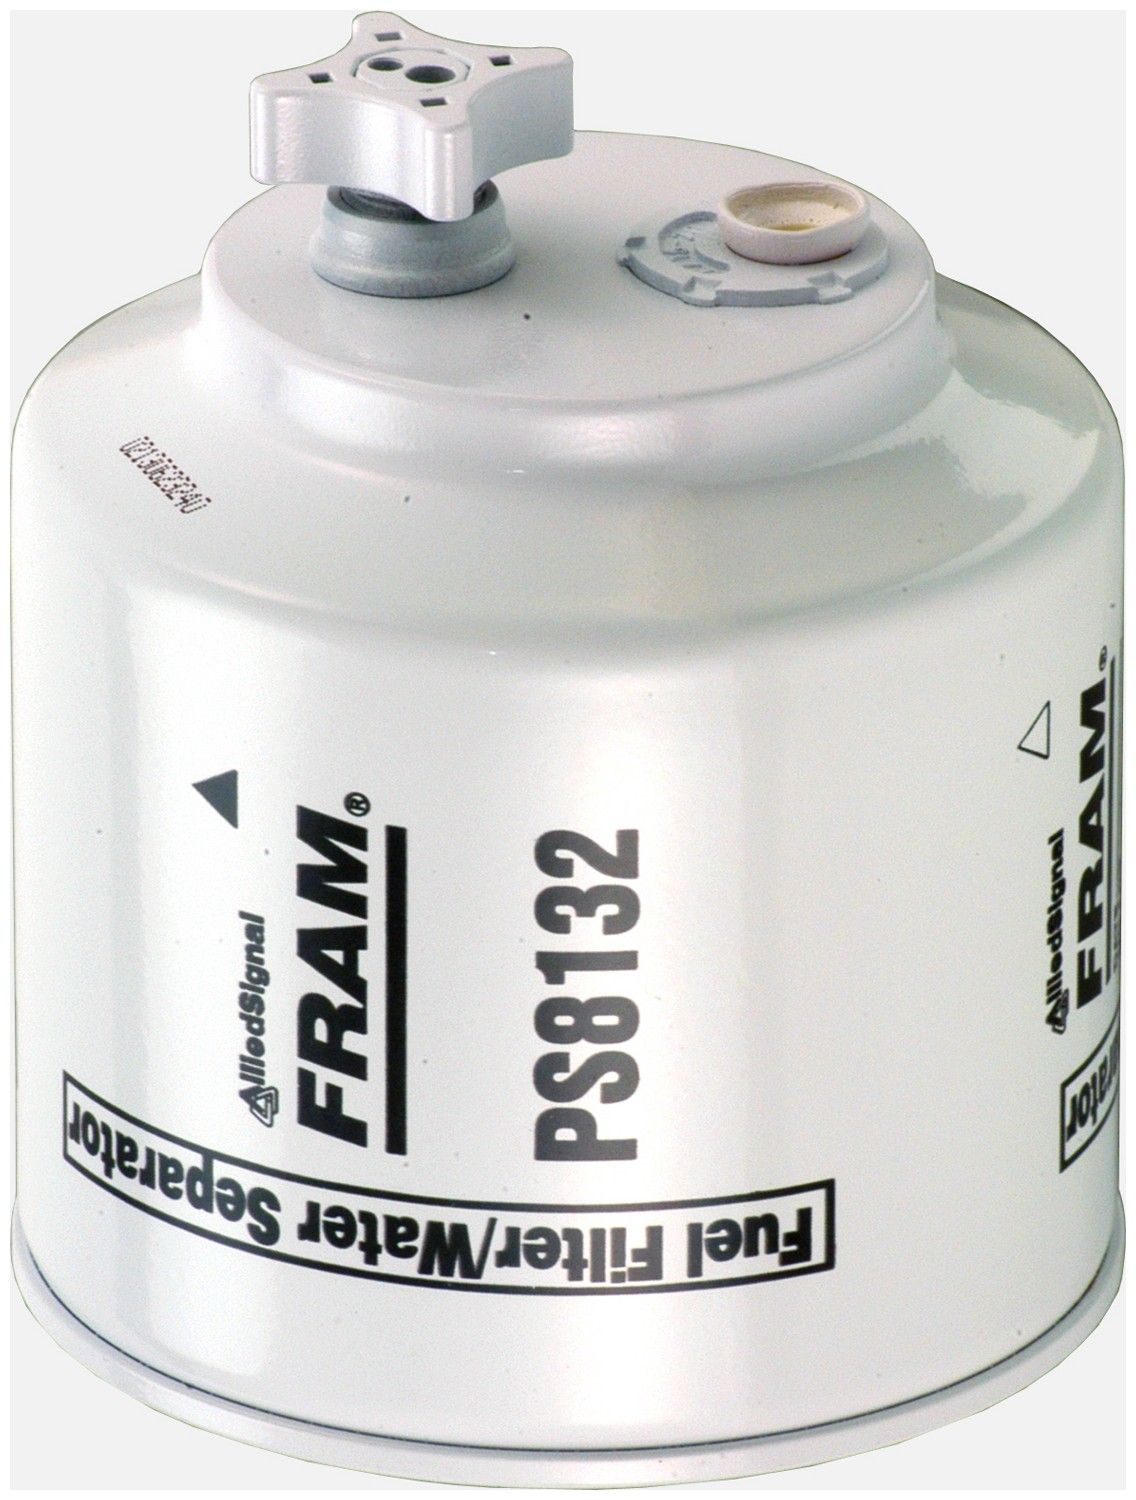 1990 Ford F Super Duty Fuel Filter 8 Cyl 7.3L (Fram PS8132) One piece  spin-on filter, with water sensor port Spin-on Fuel Water Separator Filter .